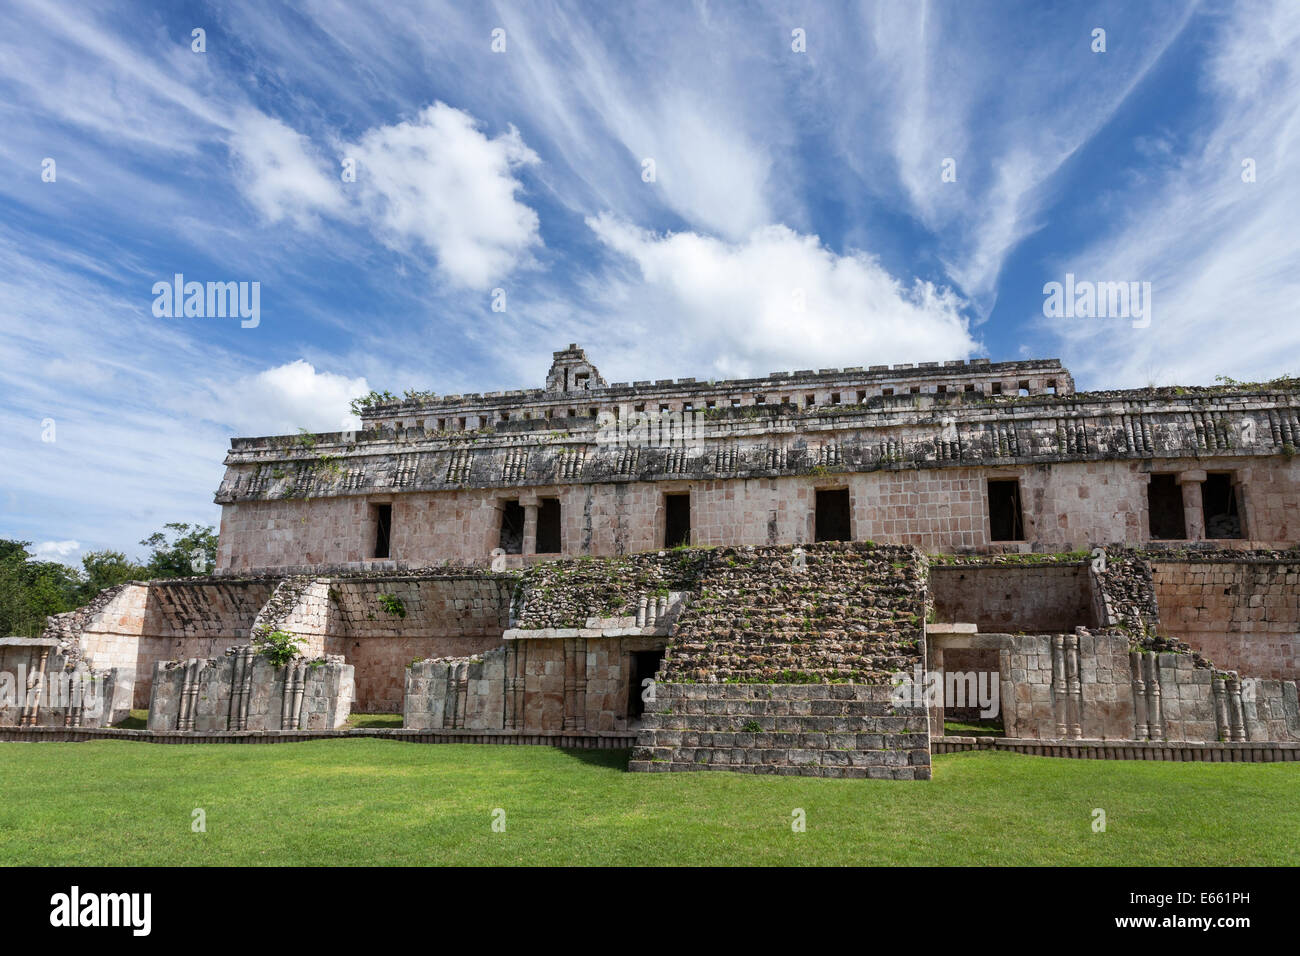 The Teocalli or Two Storied Palace at Kabah, Yucatan, Mexico. Stock Photo